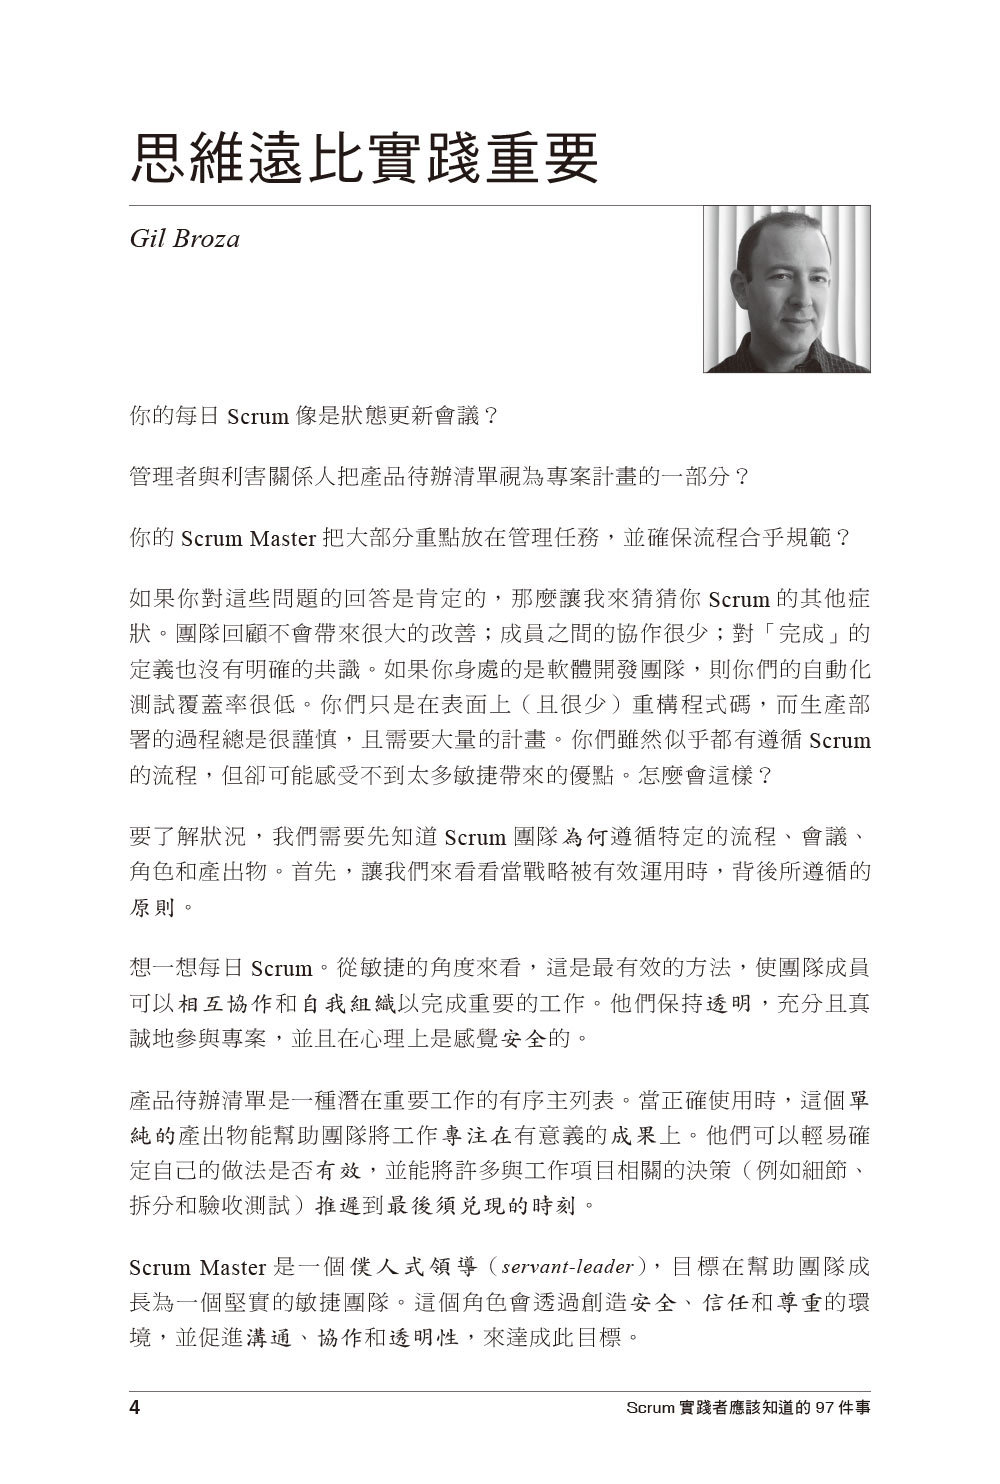 Scrum 實踐者應該知道的 97件事 來自專家的集體智慧 (97 Things Every Scrum Practitioner Should Know)-preview-7